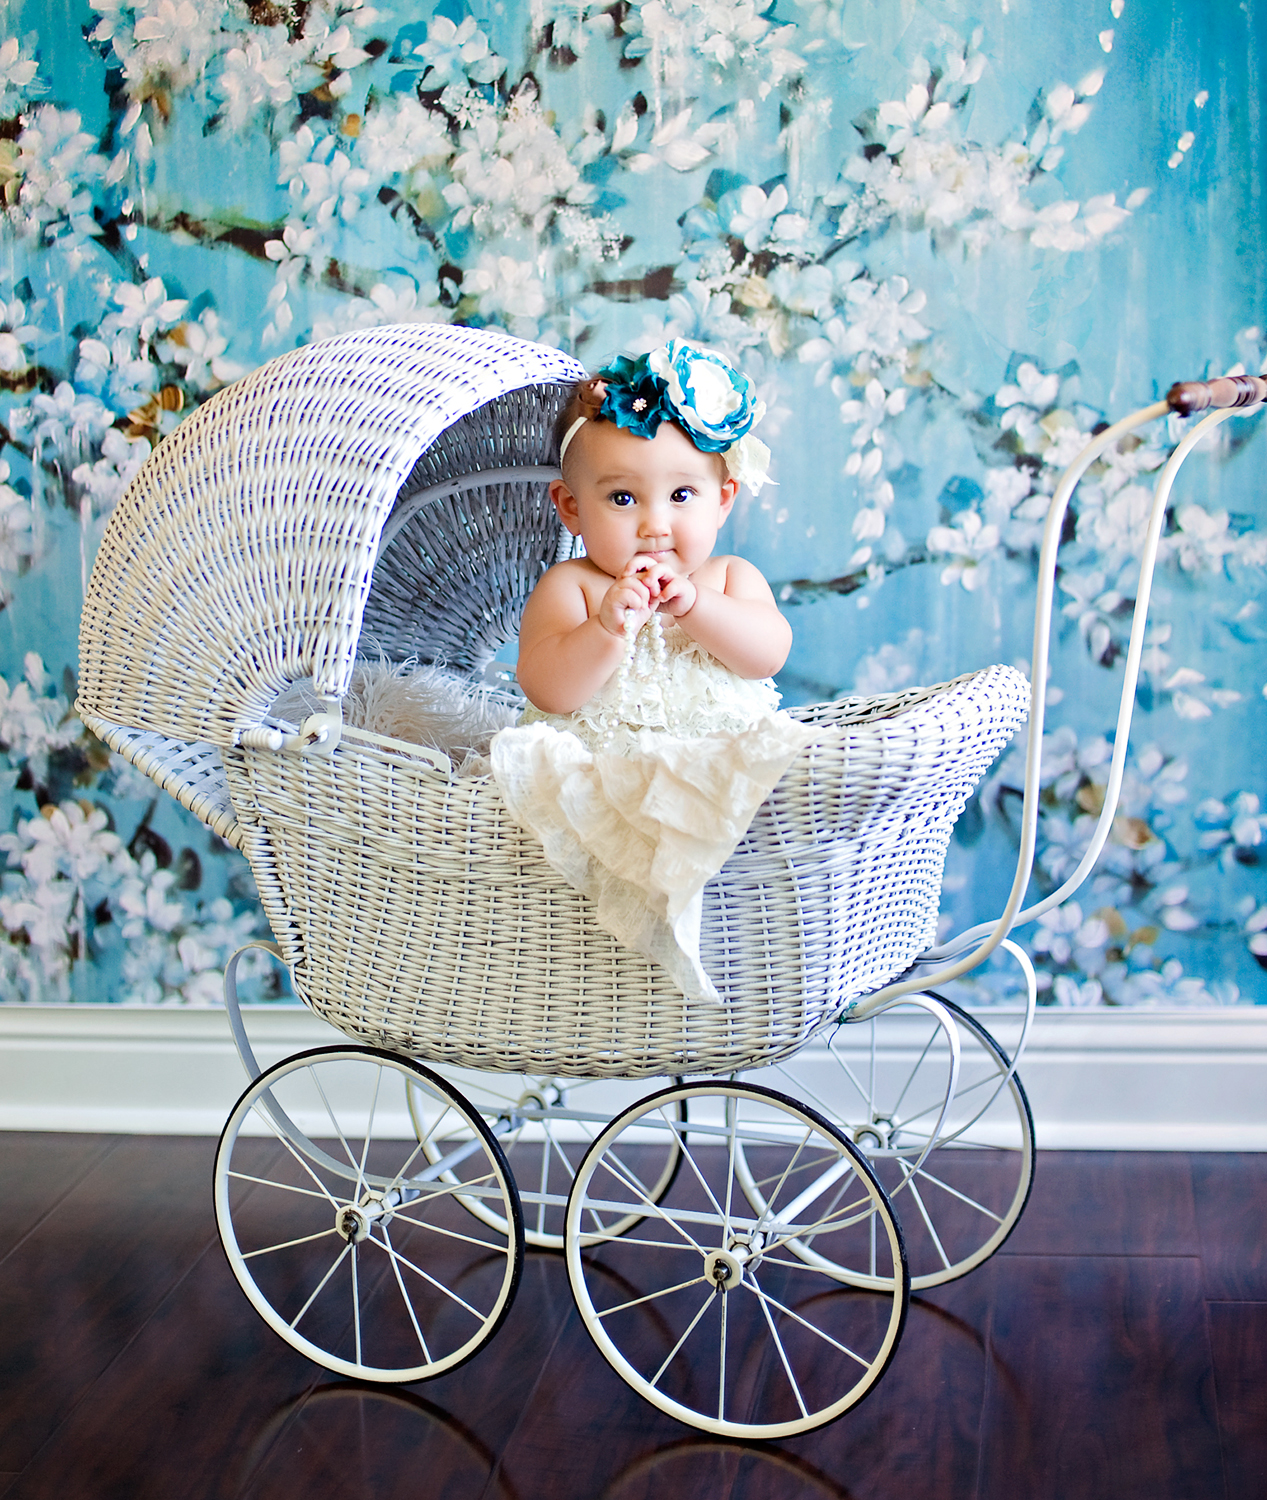 Sweety Babies Images Lovely Angels HD Wallpaper And Background Photos